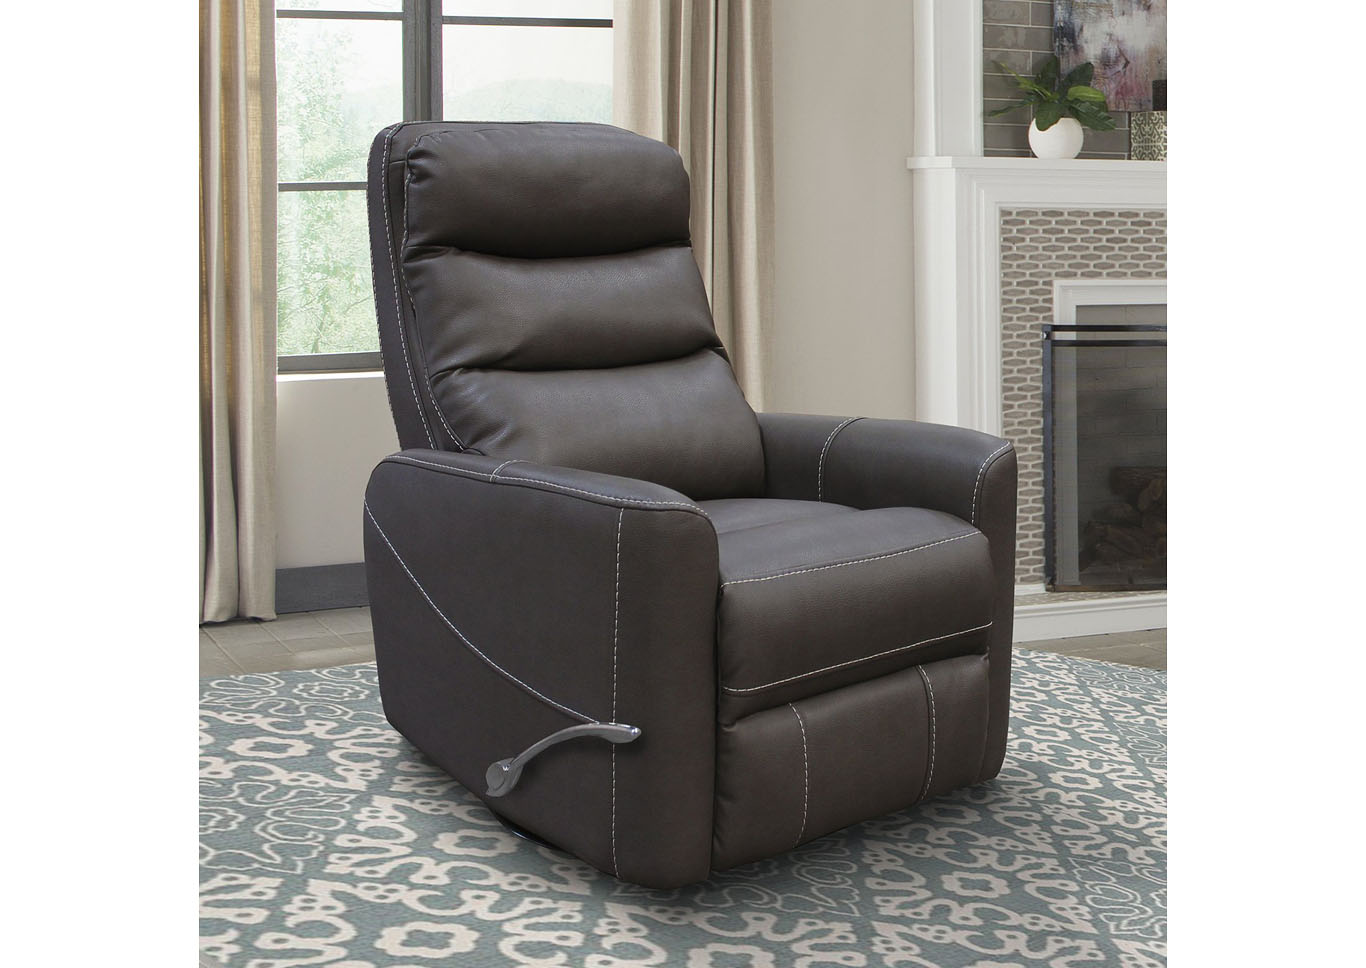 ZEUS MANUAL SWIVEL RECLINER CHOCOLATE,Instore